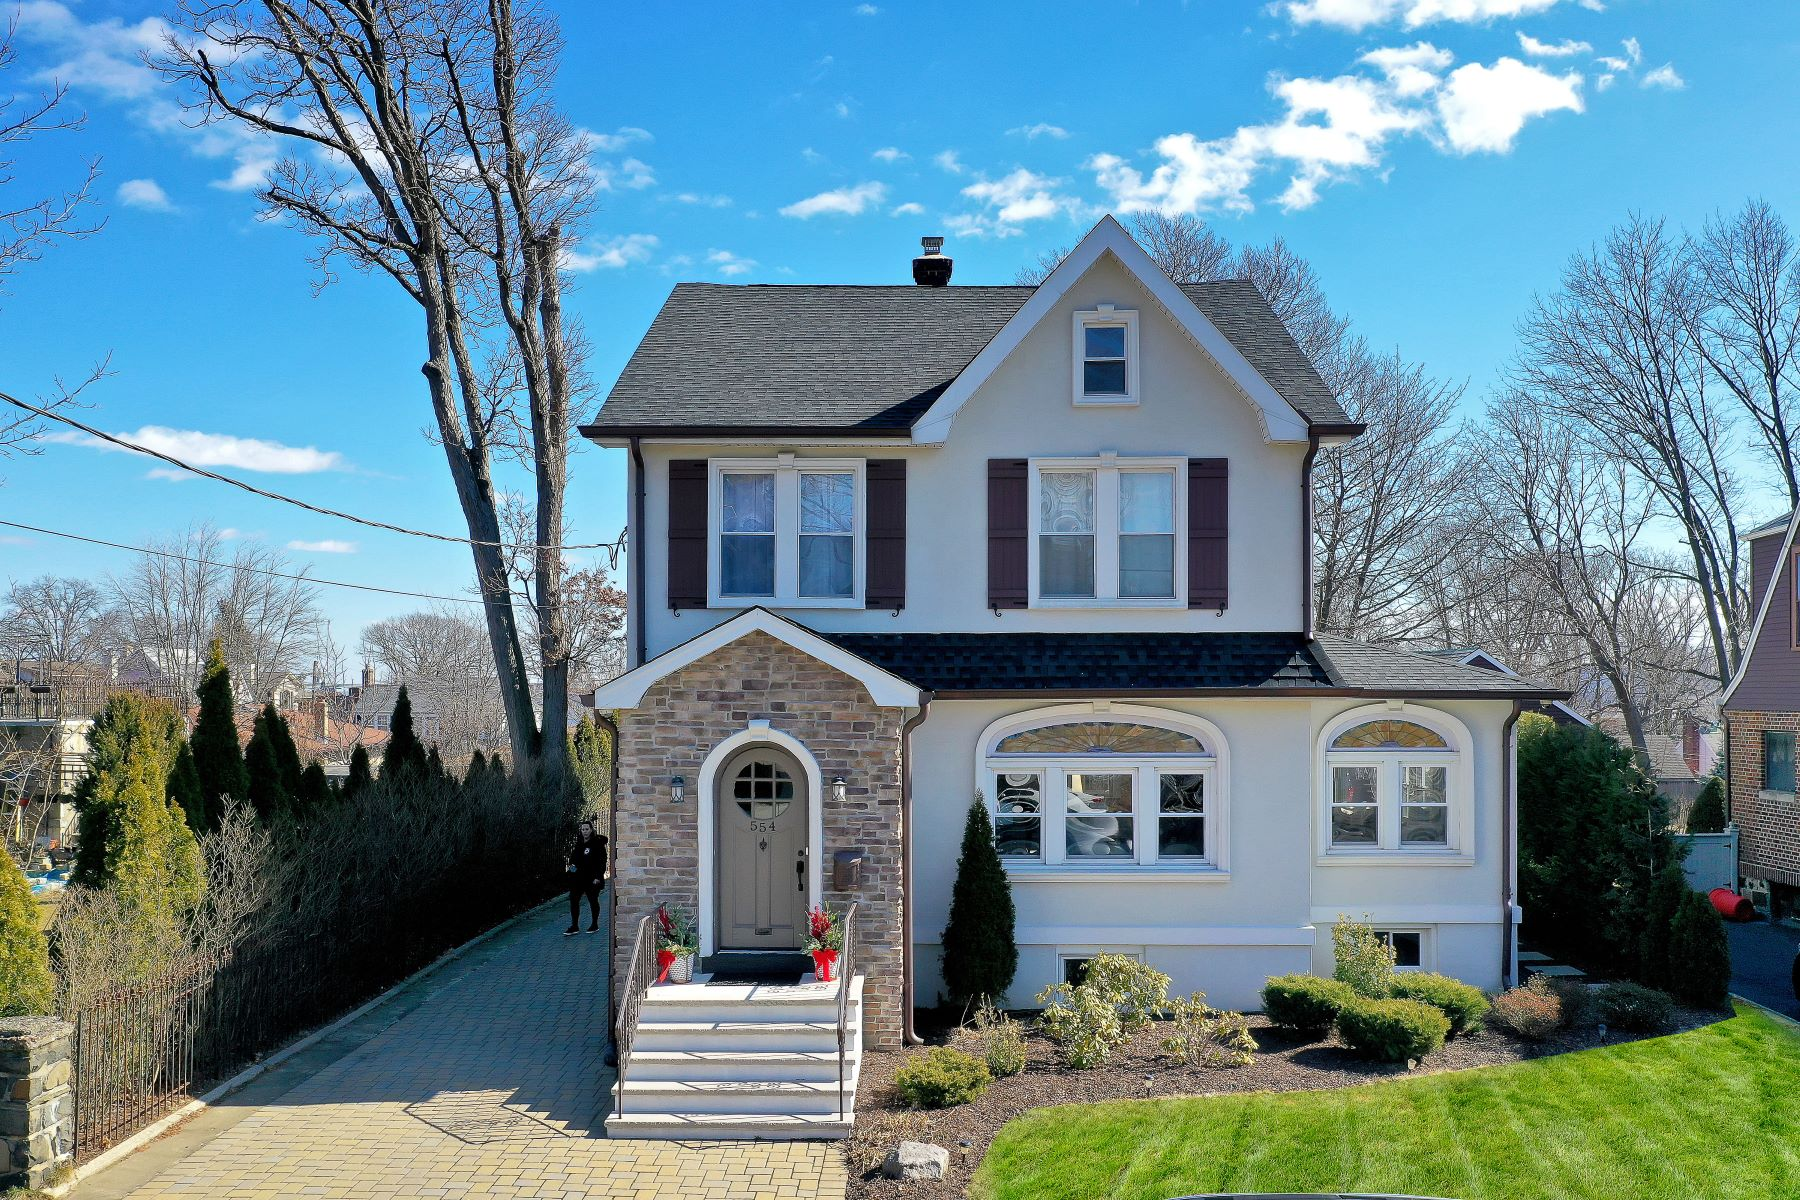 Single Family Home for Sale at WOW, do not miss this one! 554 Brandon Pl, Cliffside Park, New Jersey 07010 United States